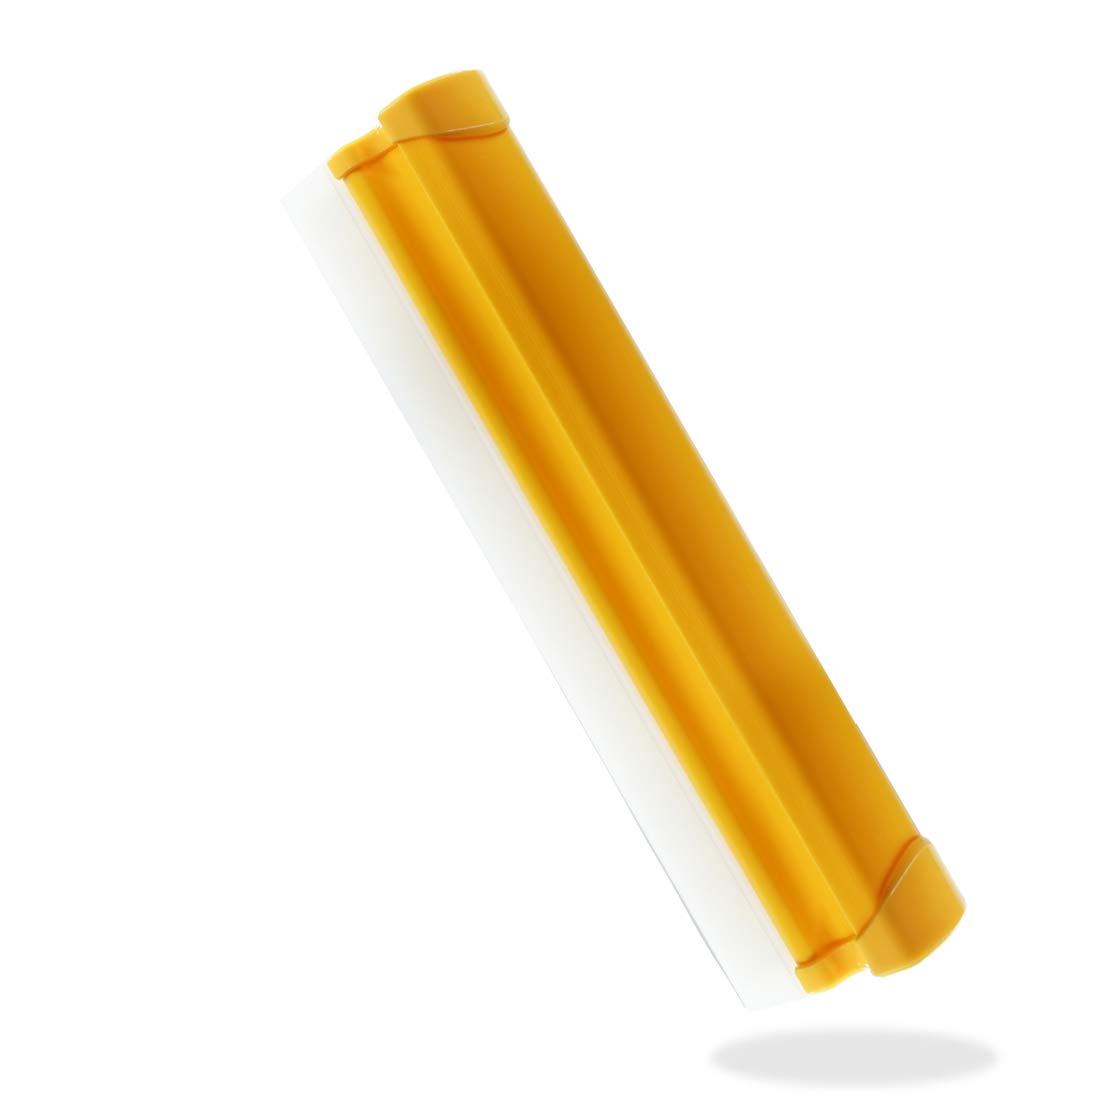 Silicone Squeegee Dual Soft Blades Wipes off Tiles Mirrors Shower Doors Windows and Cars 11.6 inch Yellow by Rain God